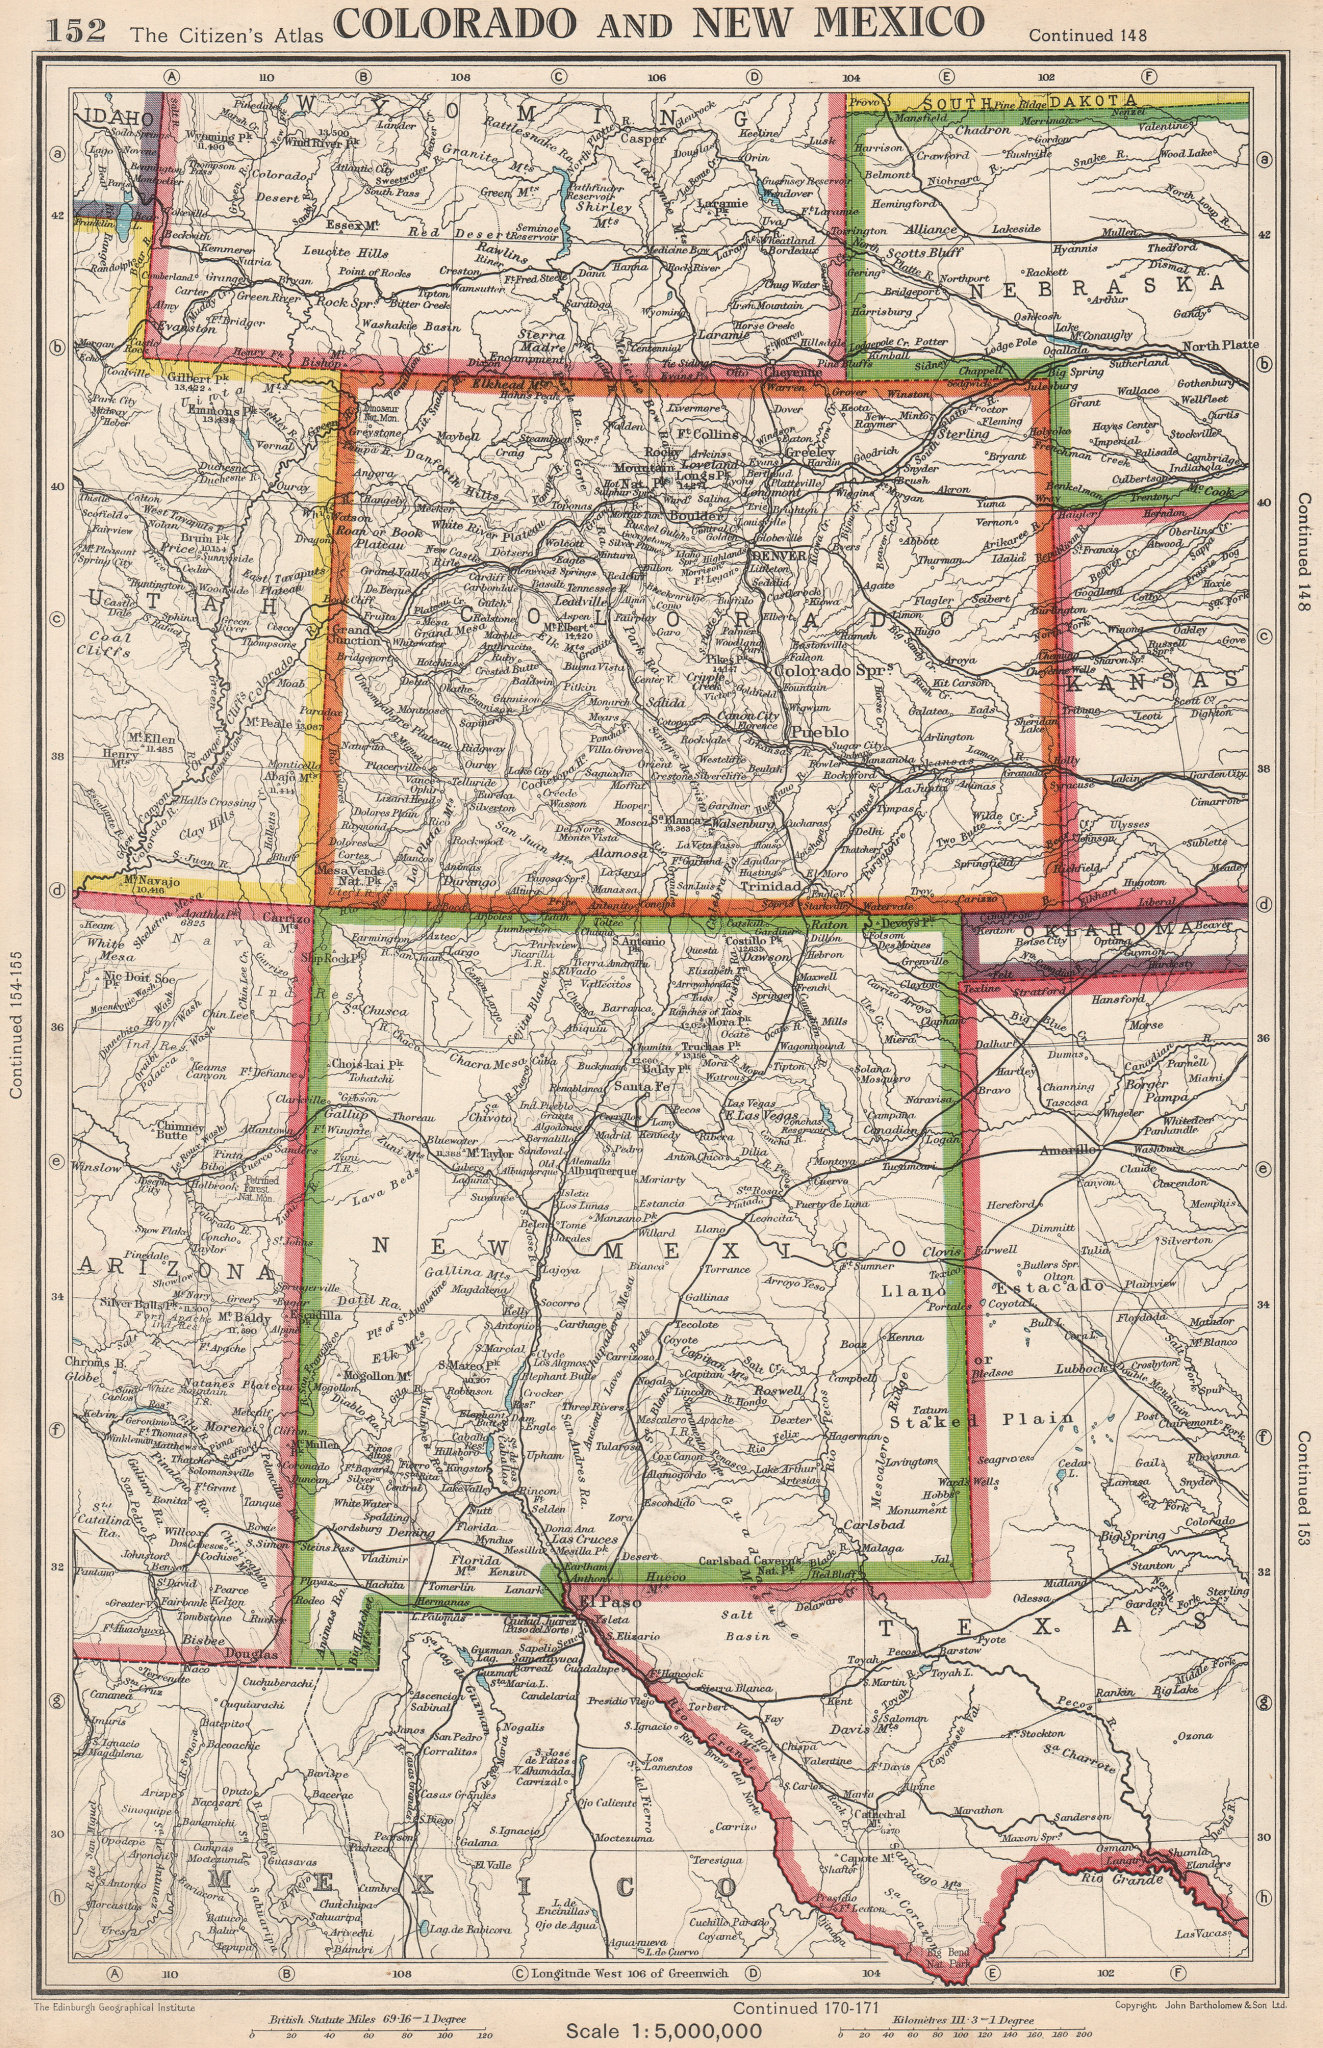 Associate Product COLORADO AND NEW MEXICO. USA state map. BARTHOLOMEW 1952 old vintage chart